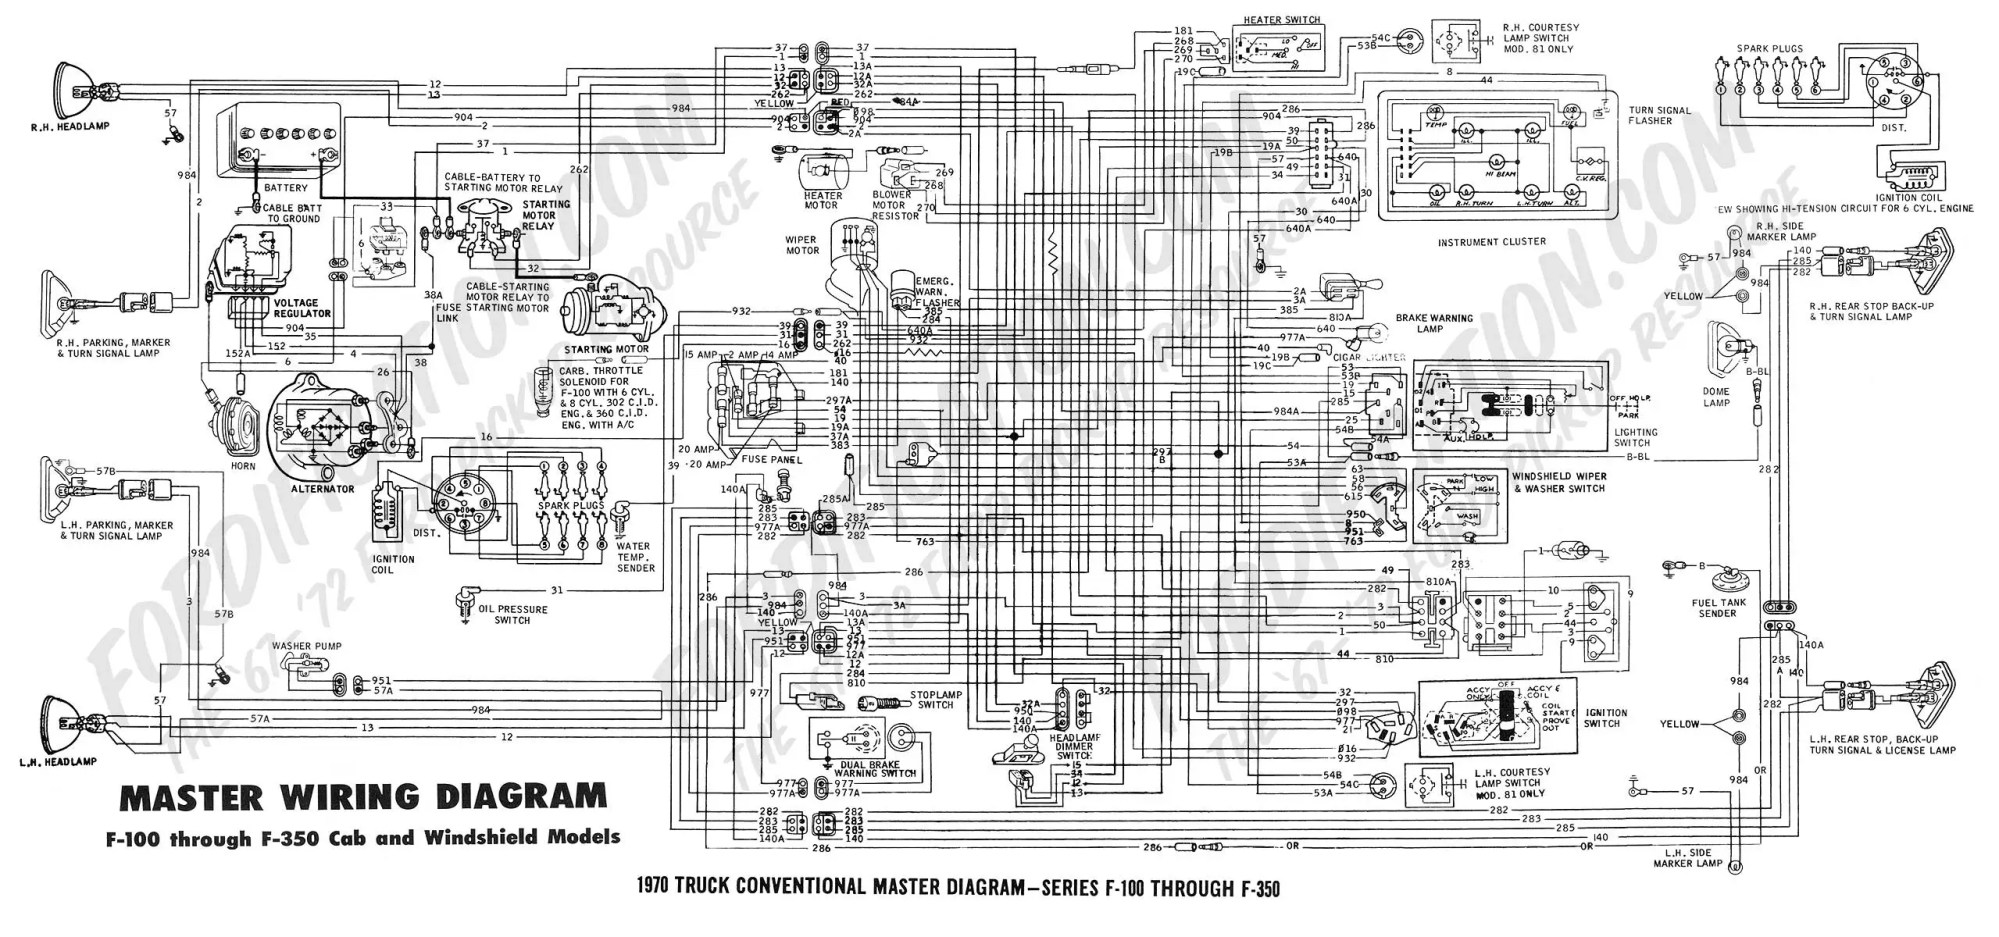 hight resolution of 2000 ford wiring diagrams wiring diagram forwardford wire harness diagram wiring diagram gol ford 2000 wiring